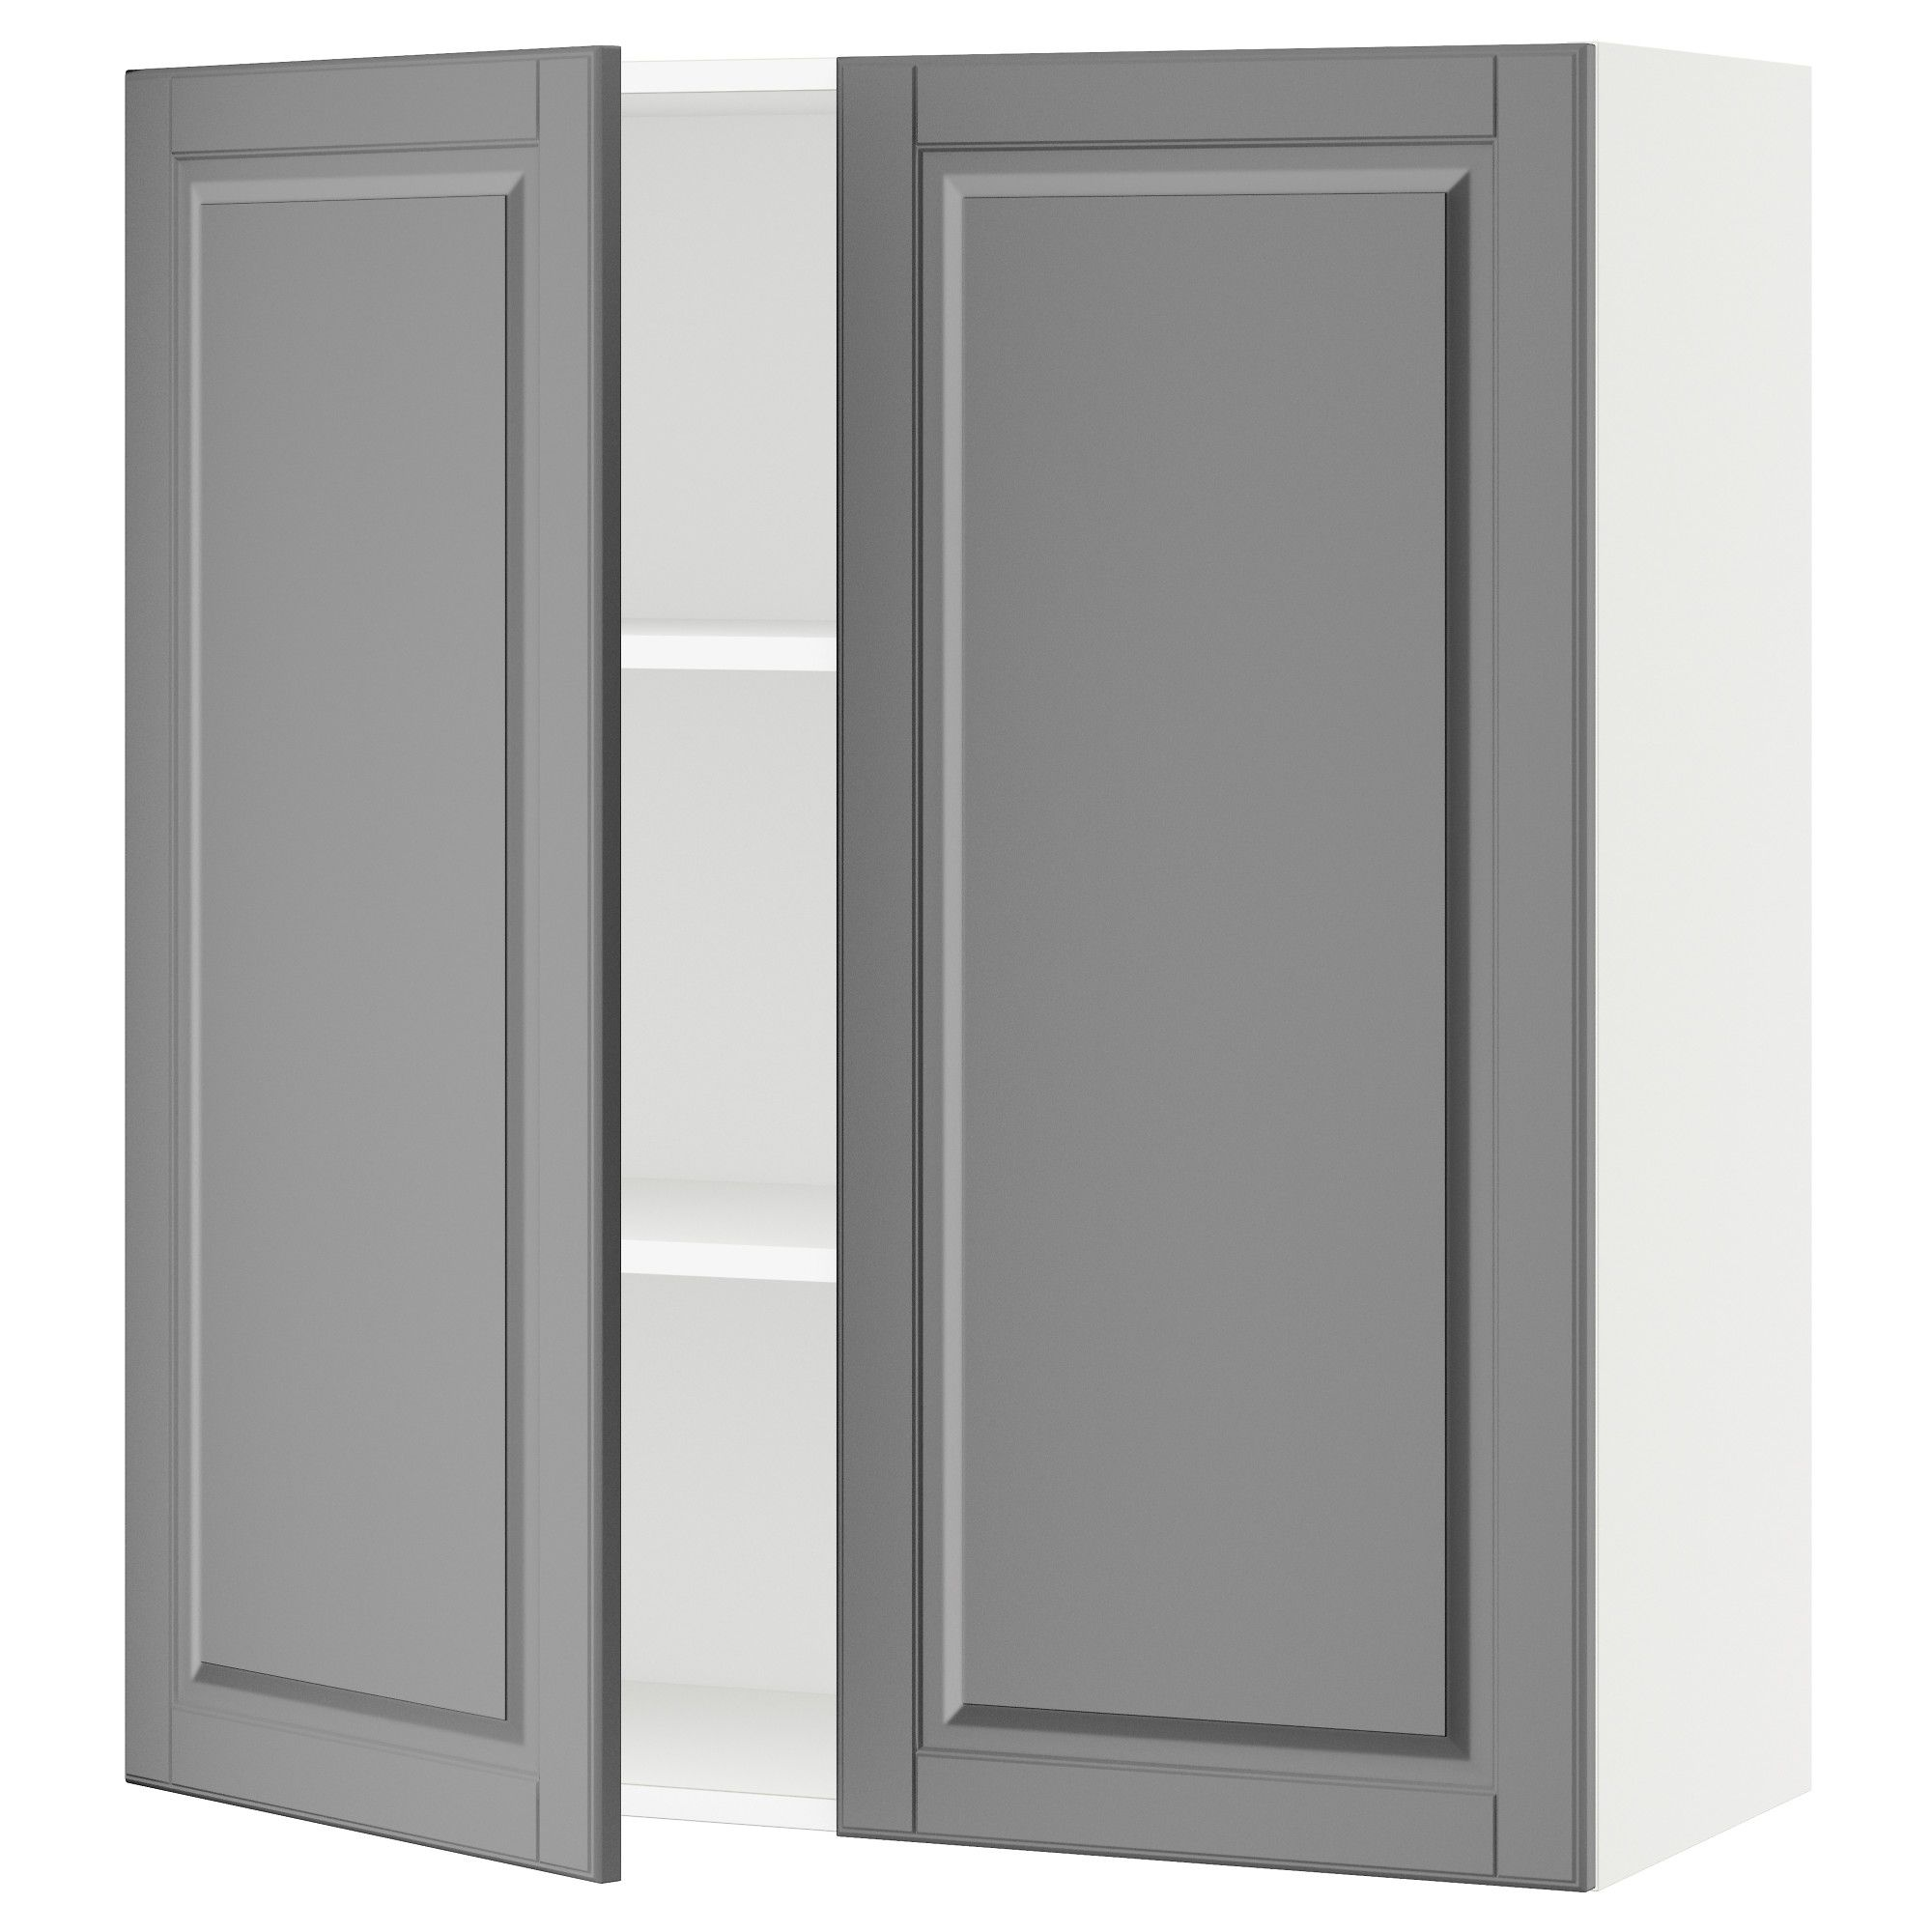 pictures lovely cabinets graphics existing cabinet inspirational ikea of kitchen doors design